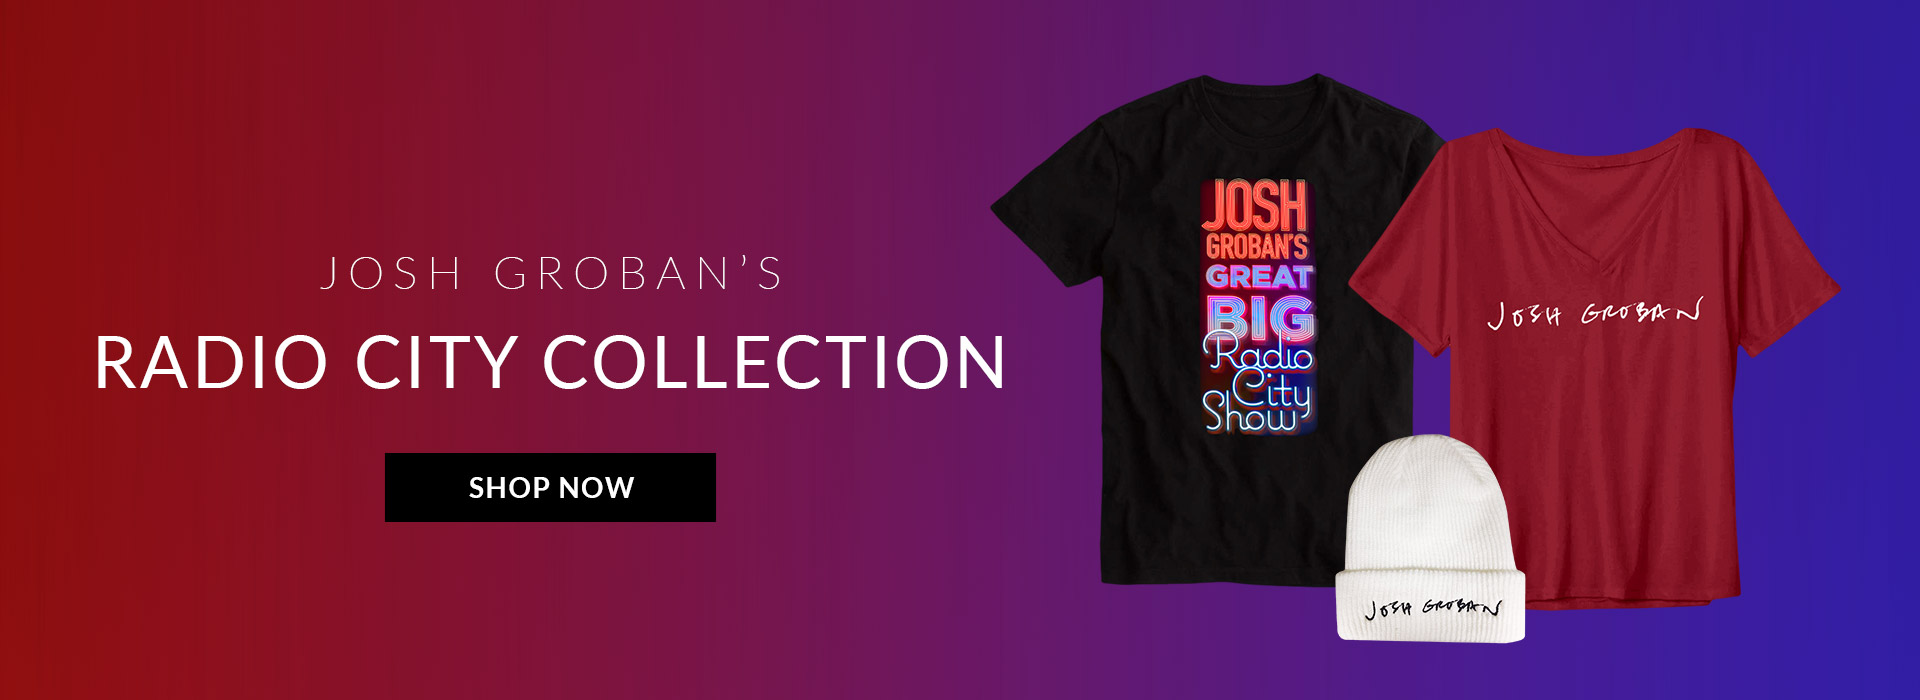 Josh Groban's Radio City Collection | Click Here to Shop Now!